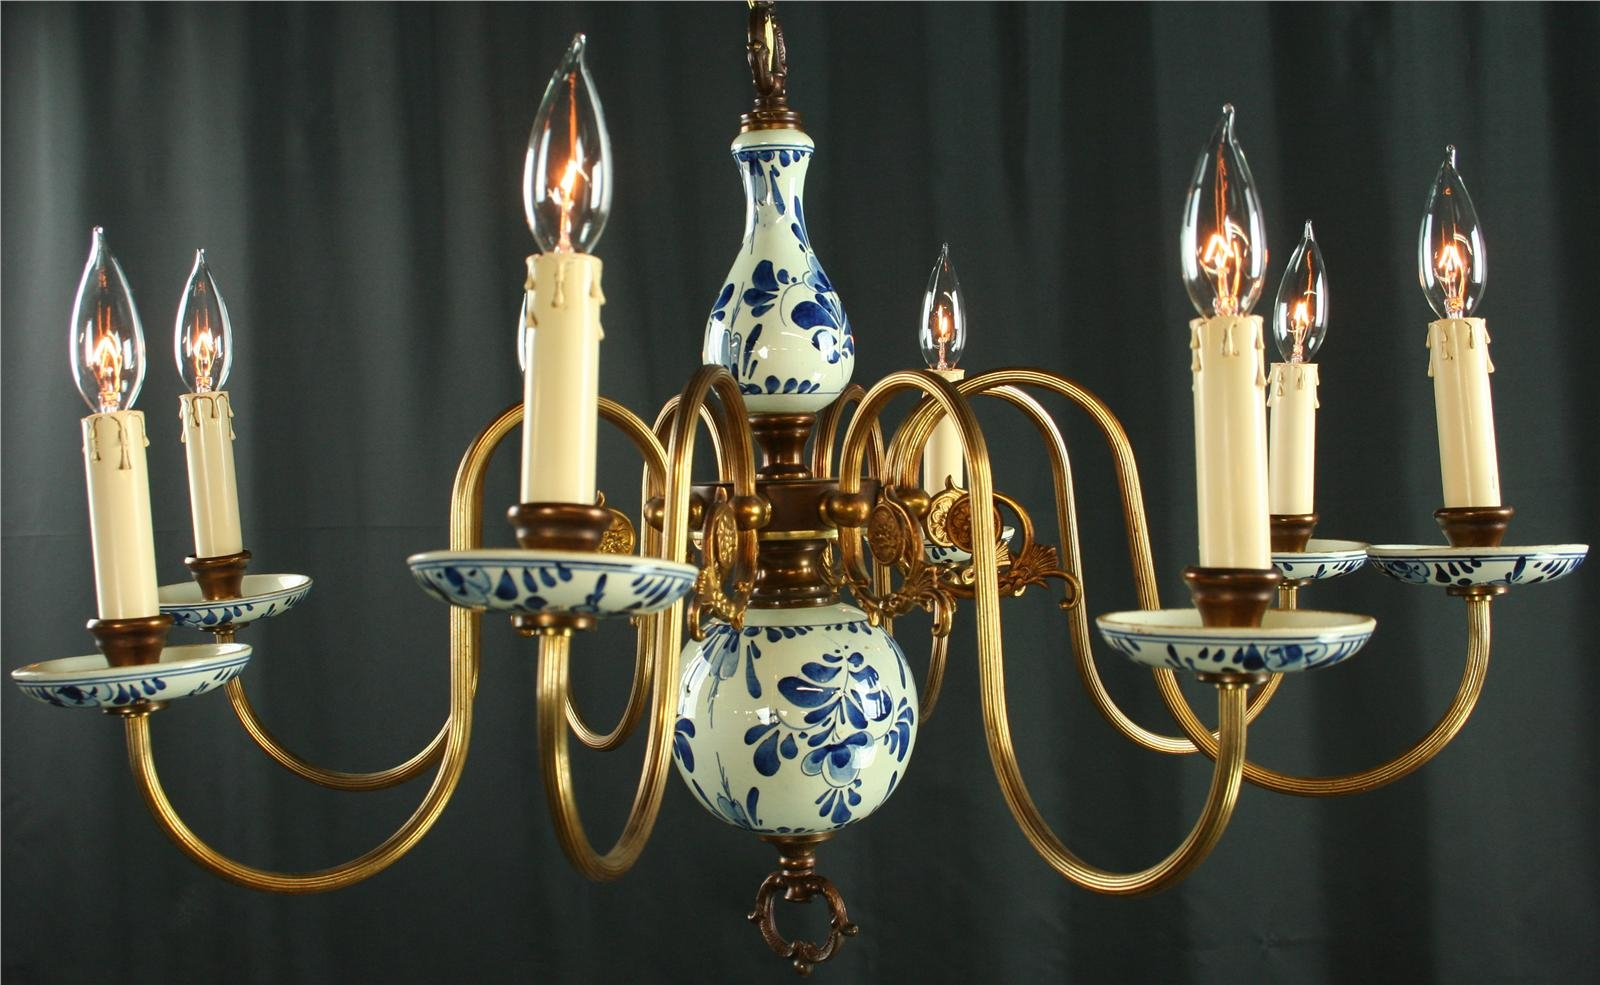 Blue and white delft chandelier chandelier gallery reserved for jeanne i delft chandelier blue white pewter vintage arubaitofo Images